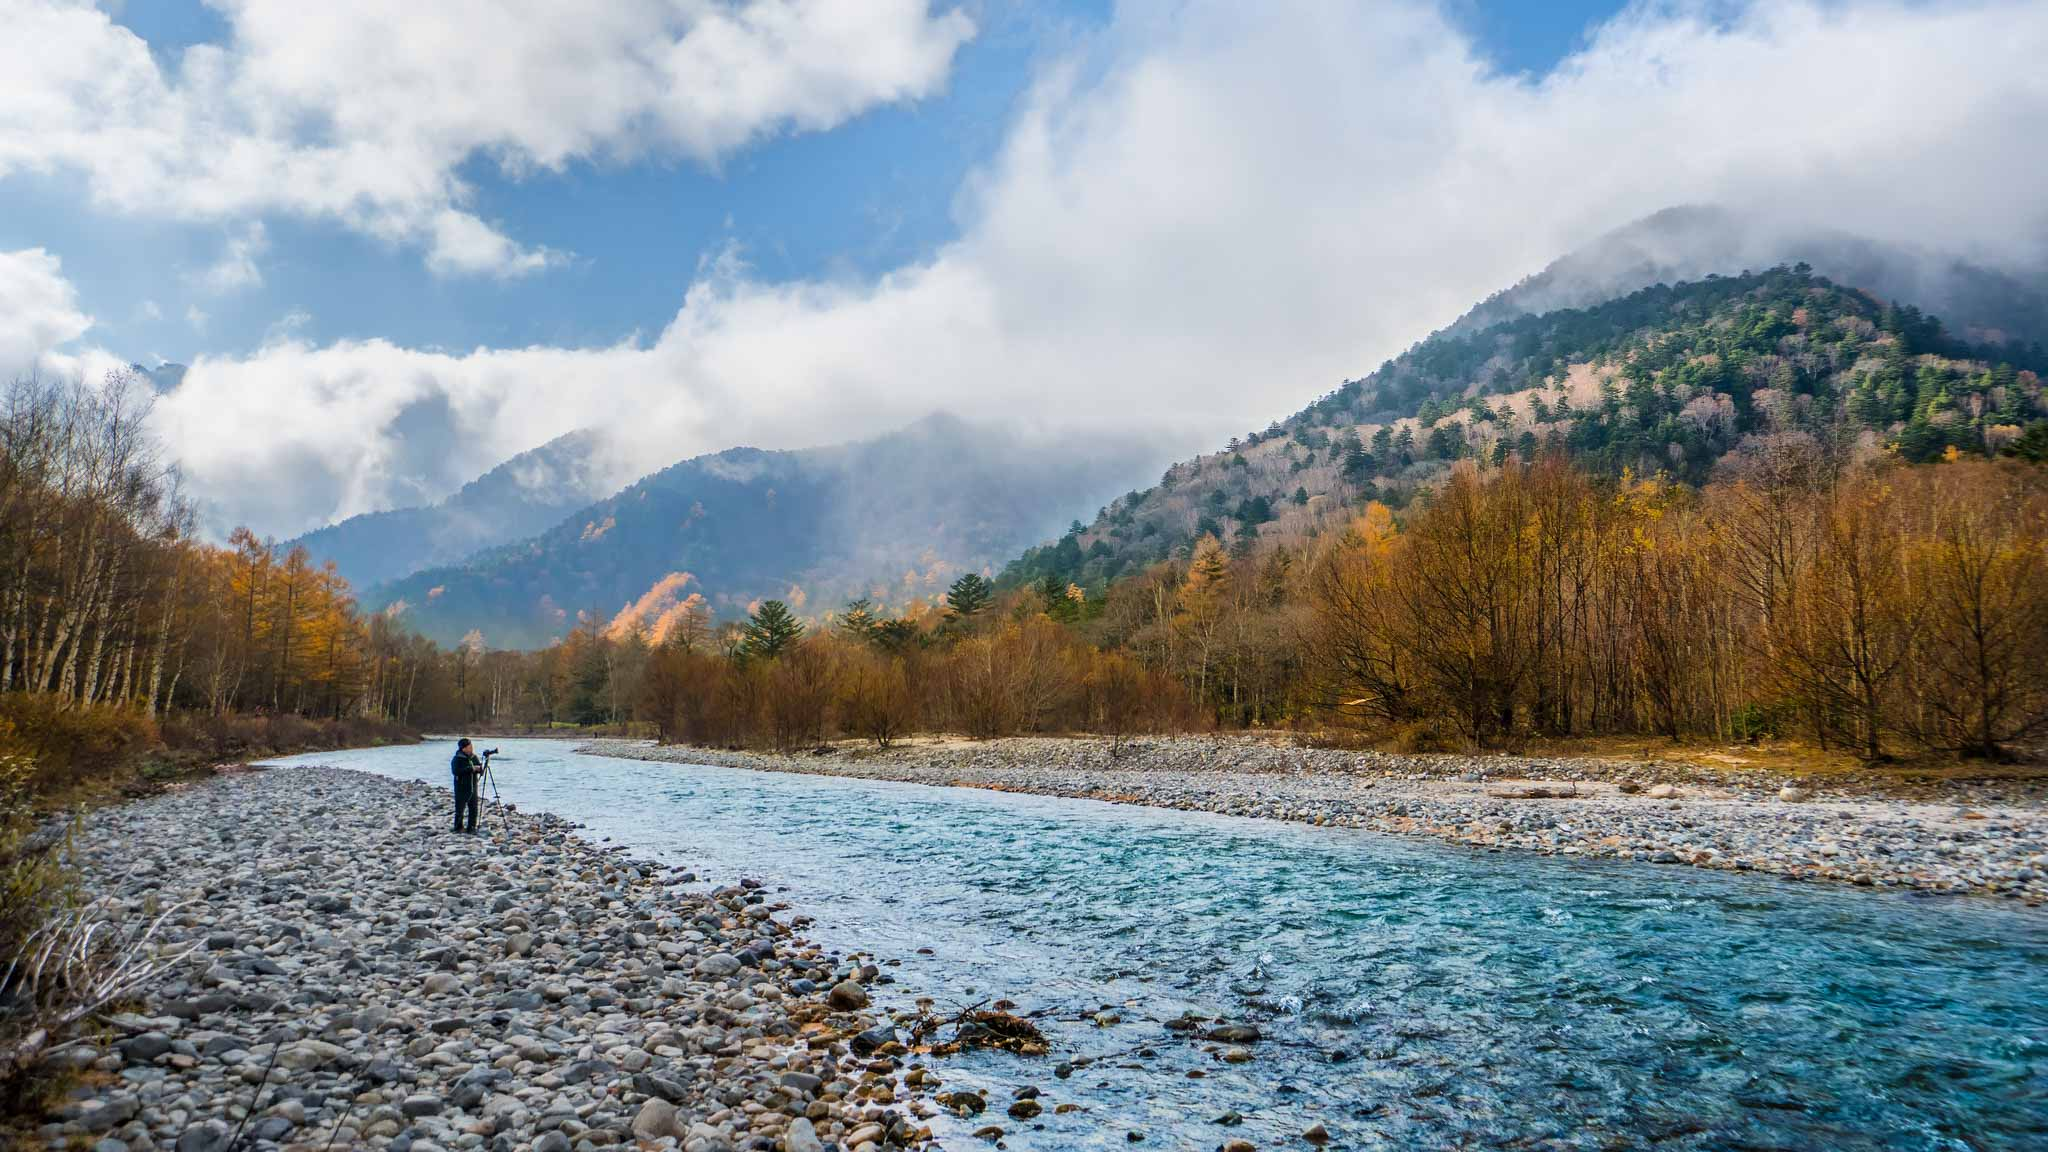 Kamikochi Japan - Visit This Amazing Valley In The Japanese Alps